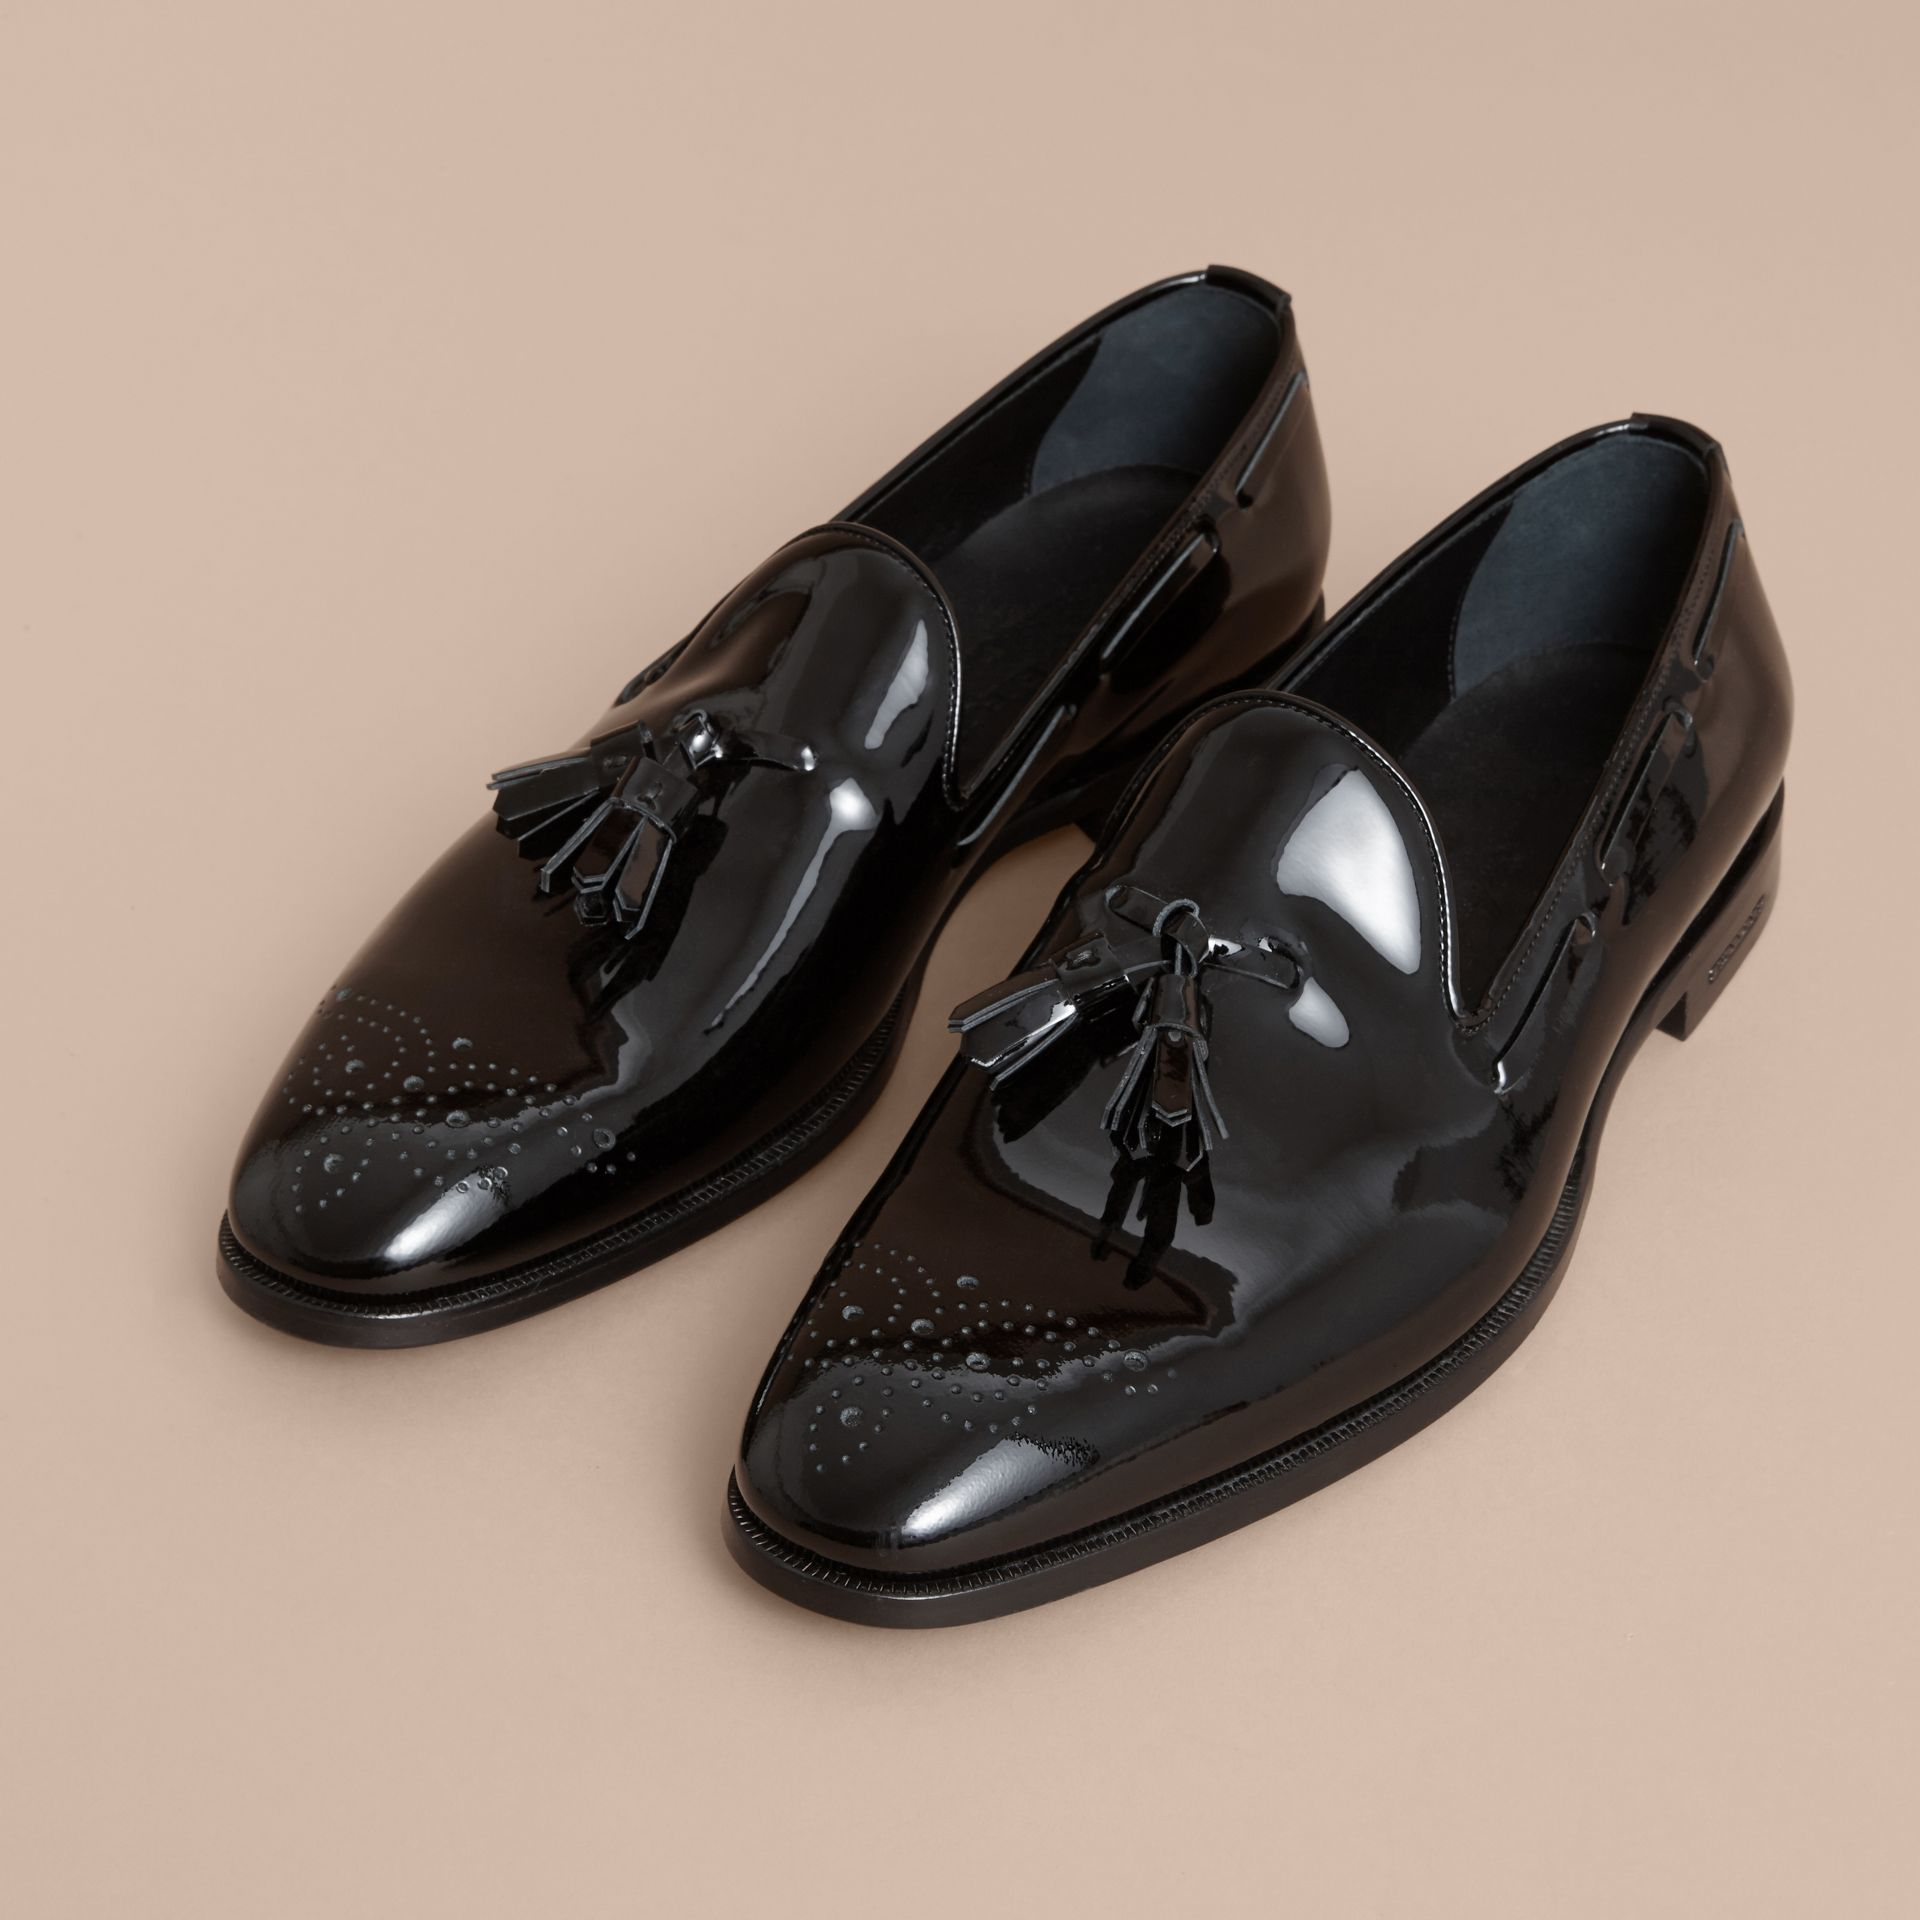 Tasselled Patent Leather Loafers in Black - Men | Burberry - gallery image 5